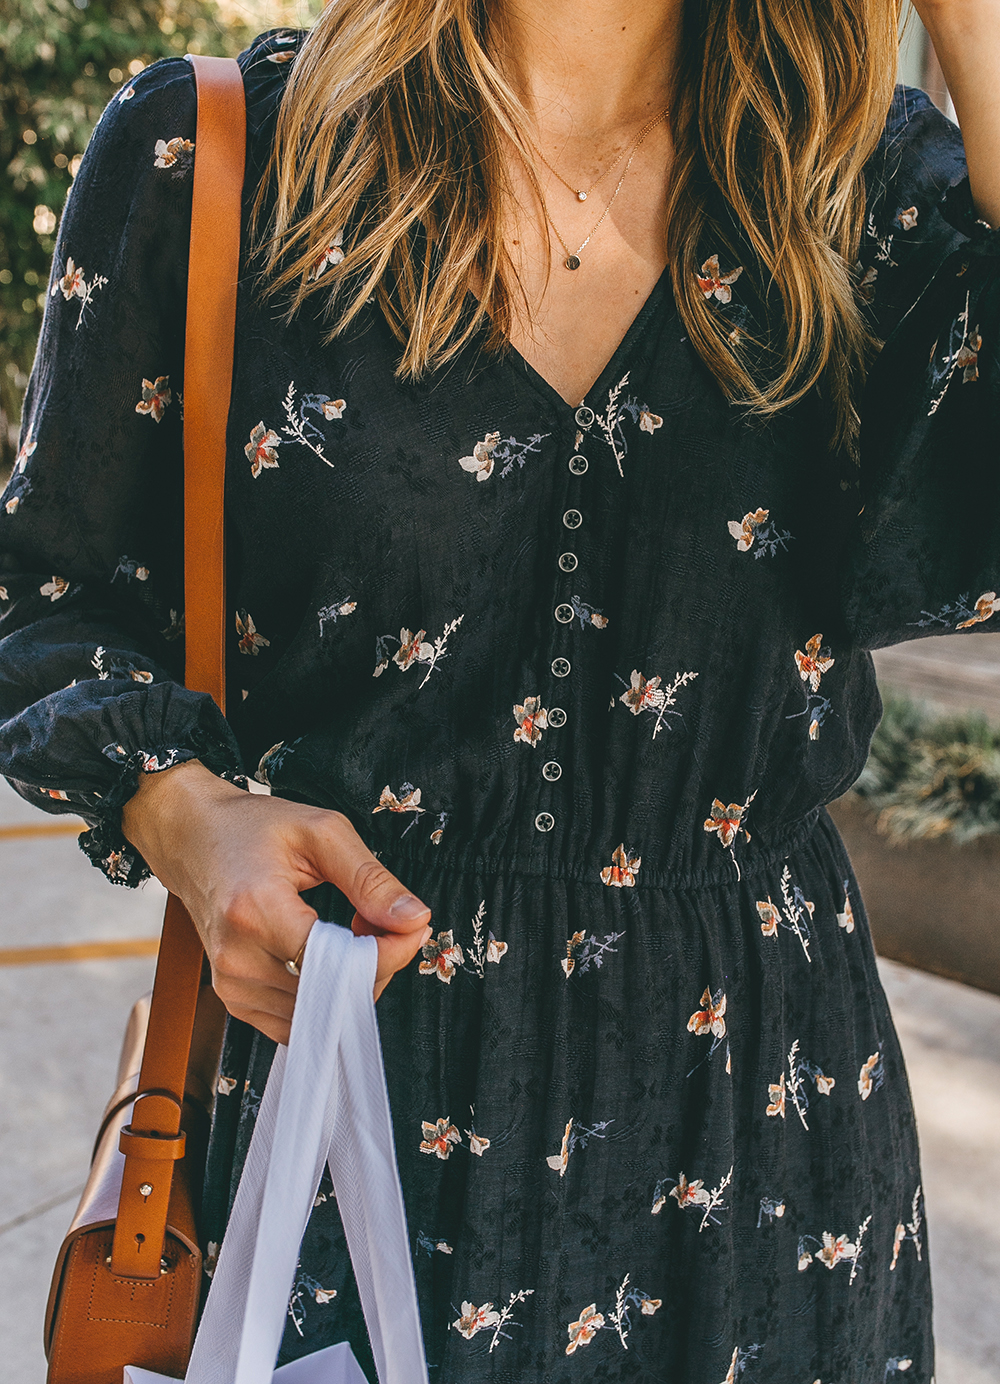 livvyland-blog-olivia-watson-austin-texas-fashion-blogger-domain-northside-joie-fall-dress-ankle-booties-outfit-2